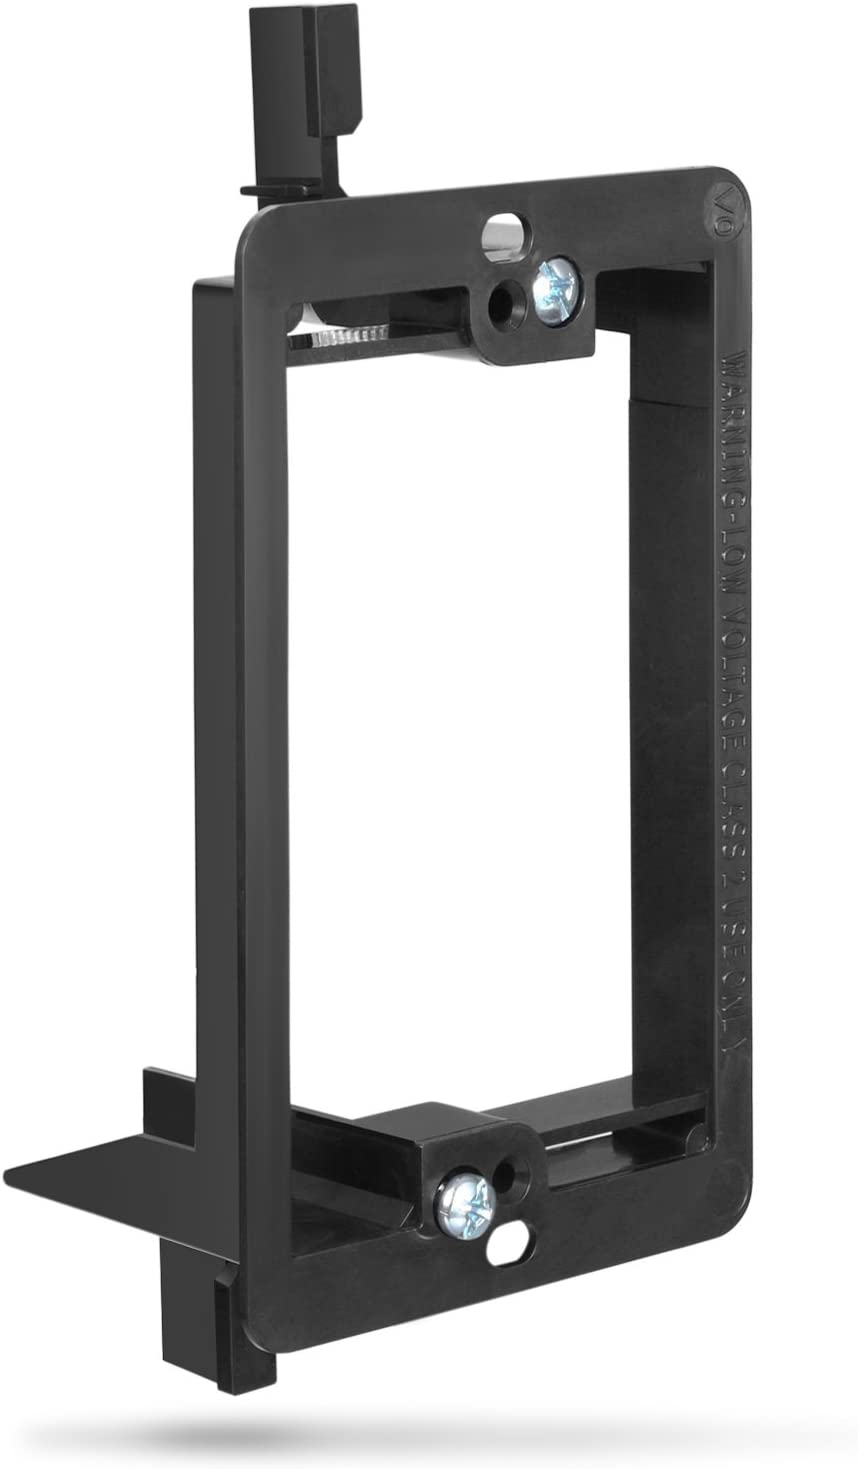 Low Voltage Mounting Bracket (1 Gang), Fosmon Low Voltage Mounting Bracket (Mounting Screws Included) Compatible with Telephone Wires, Network Cables, HDMI, Coaxial, Speaker Cables